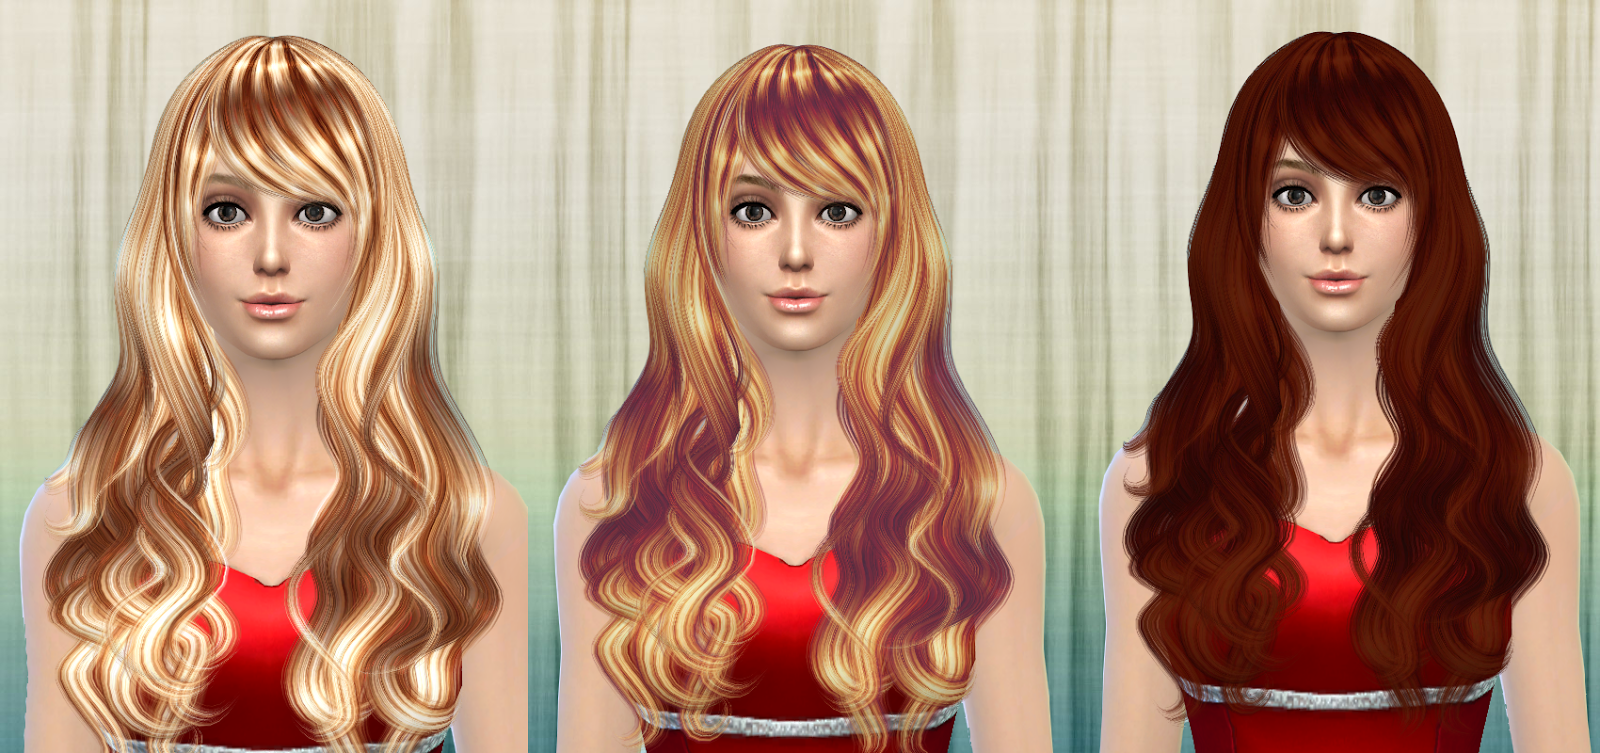 Cazy Sorrow Recolors by Darkiiesims4